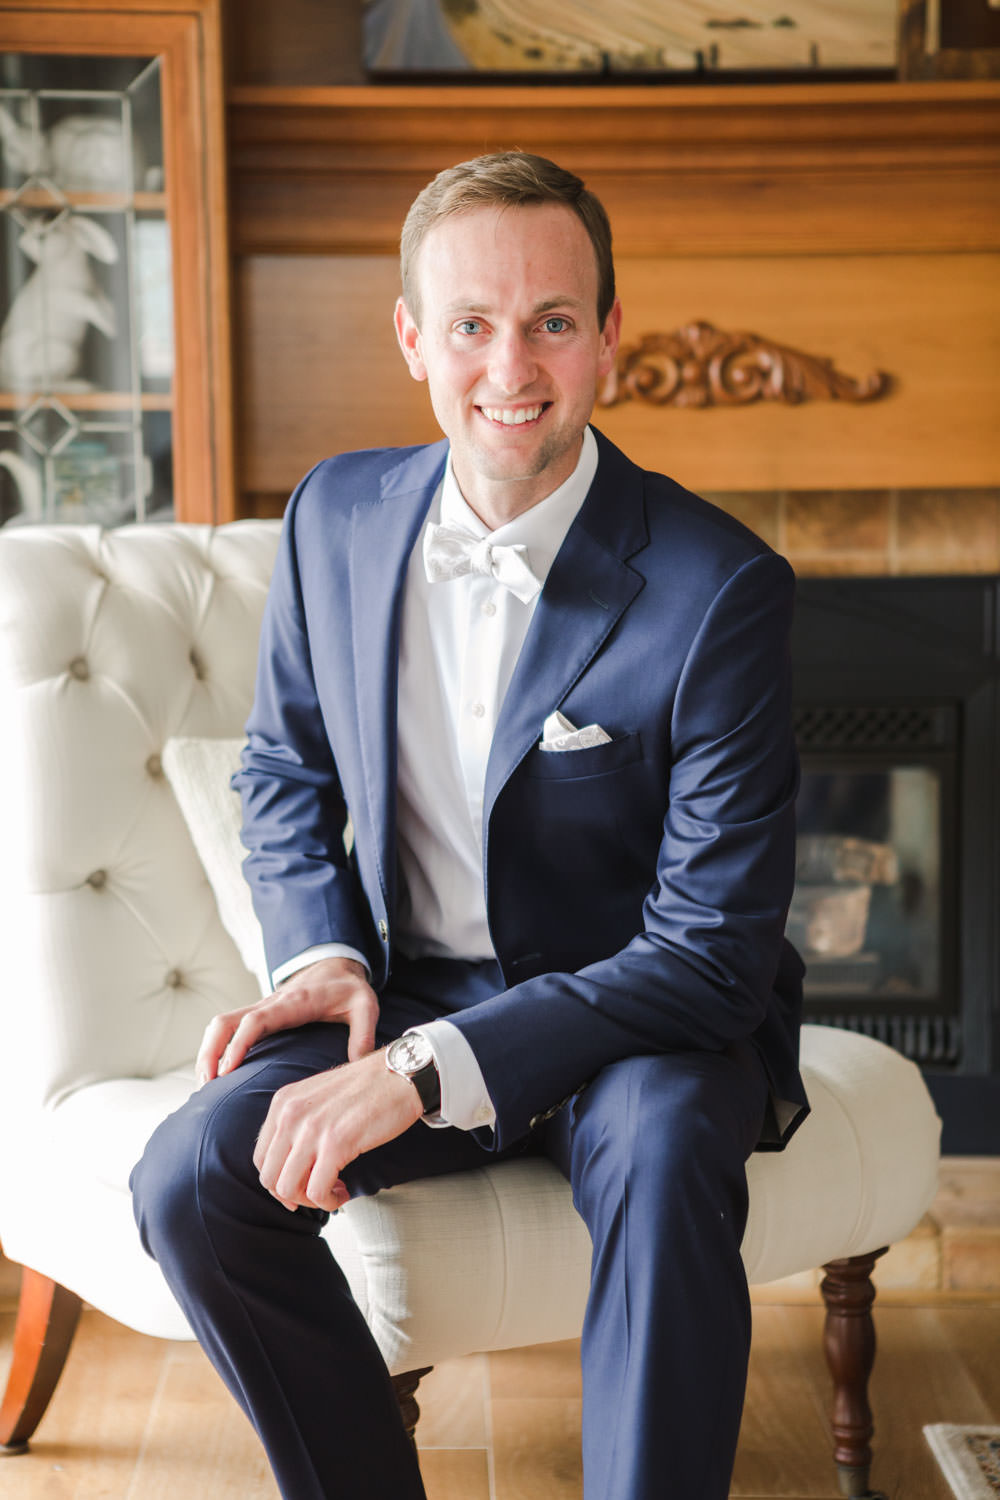 Groom indoor portrait in a navy suit, Cavin Elizabeth Photography